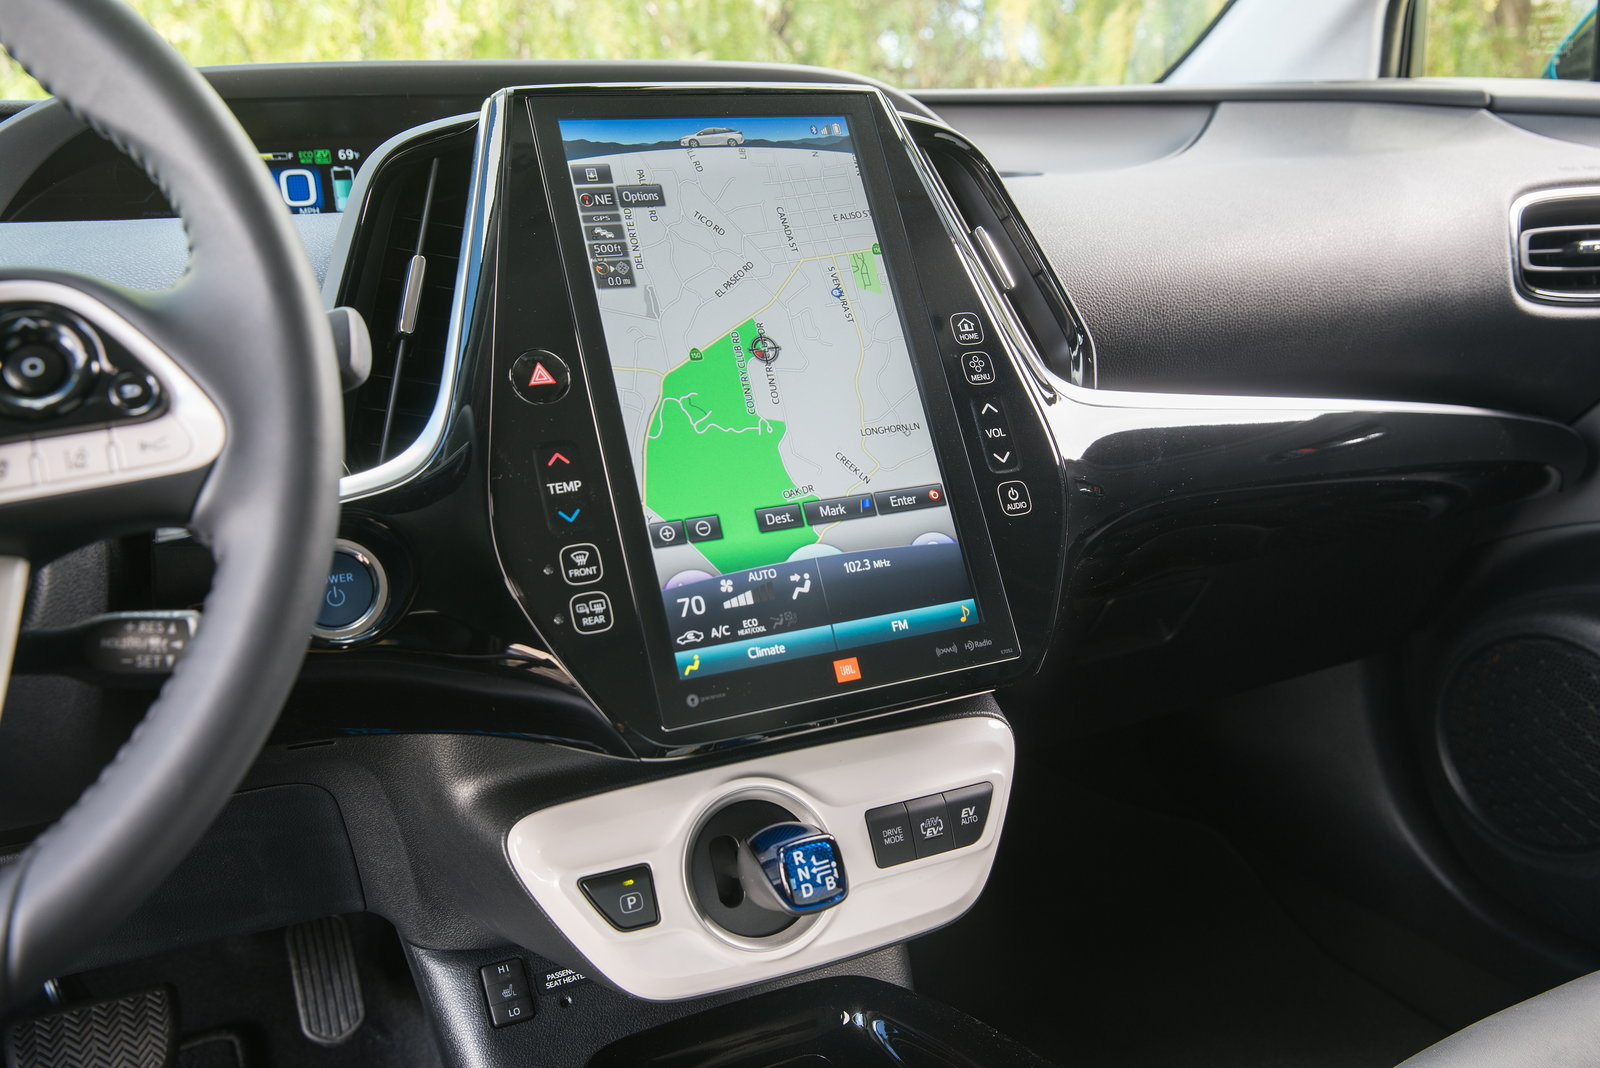 2018 Chevy Volt Release Date >> 2018 Toyota Prius Prime: Preview, Pricing, Release Date